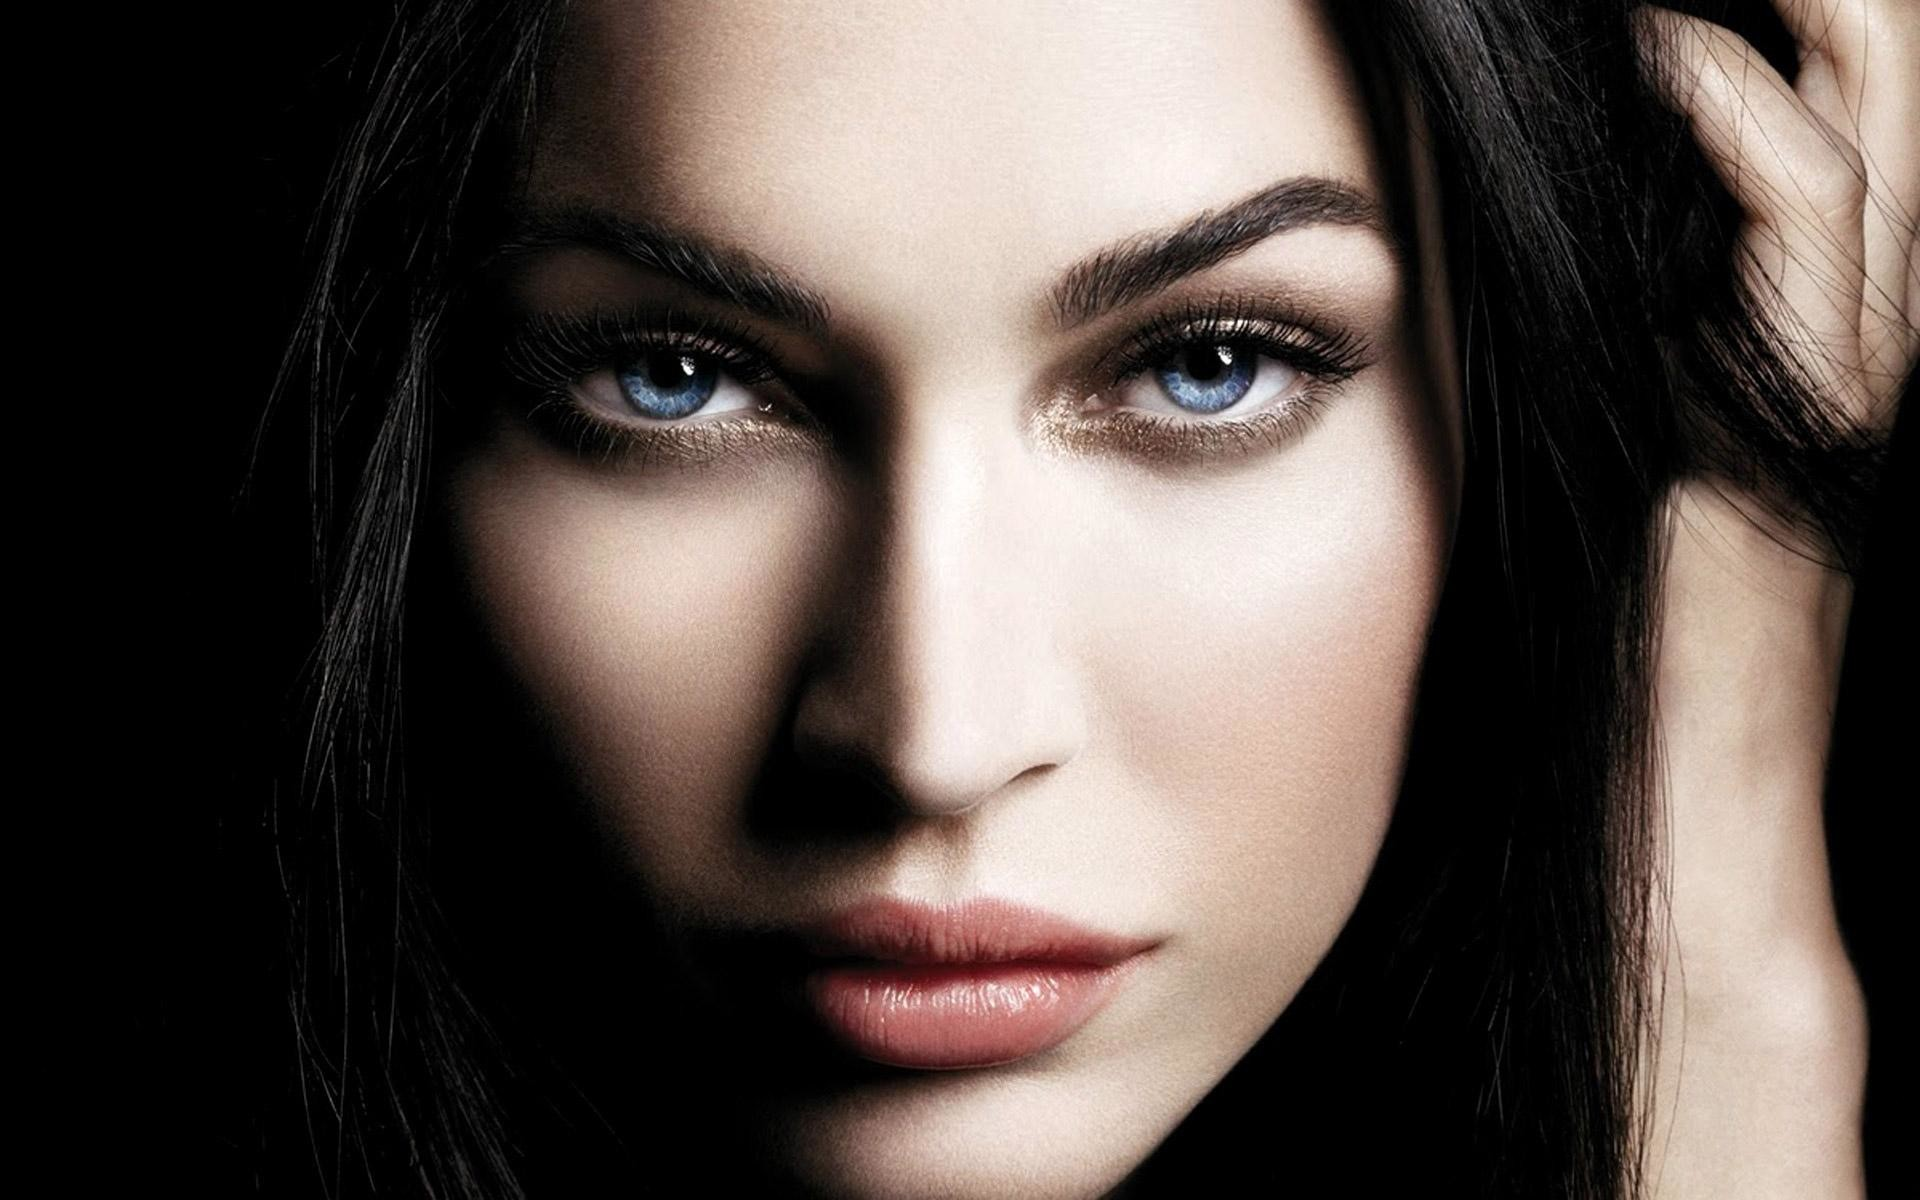 File name: Beautiful-Women-Faces-Wallpaper.jpeg. File type: image/jpeg.  Uploaded on: 20 August 2015. File size: 195 kB. Dimensions: 1920 × 1200